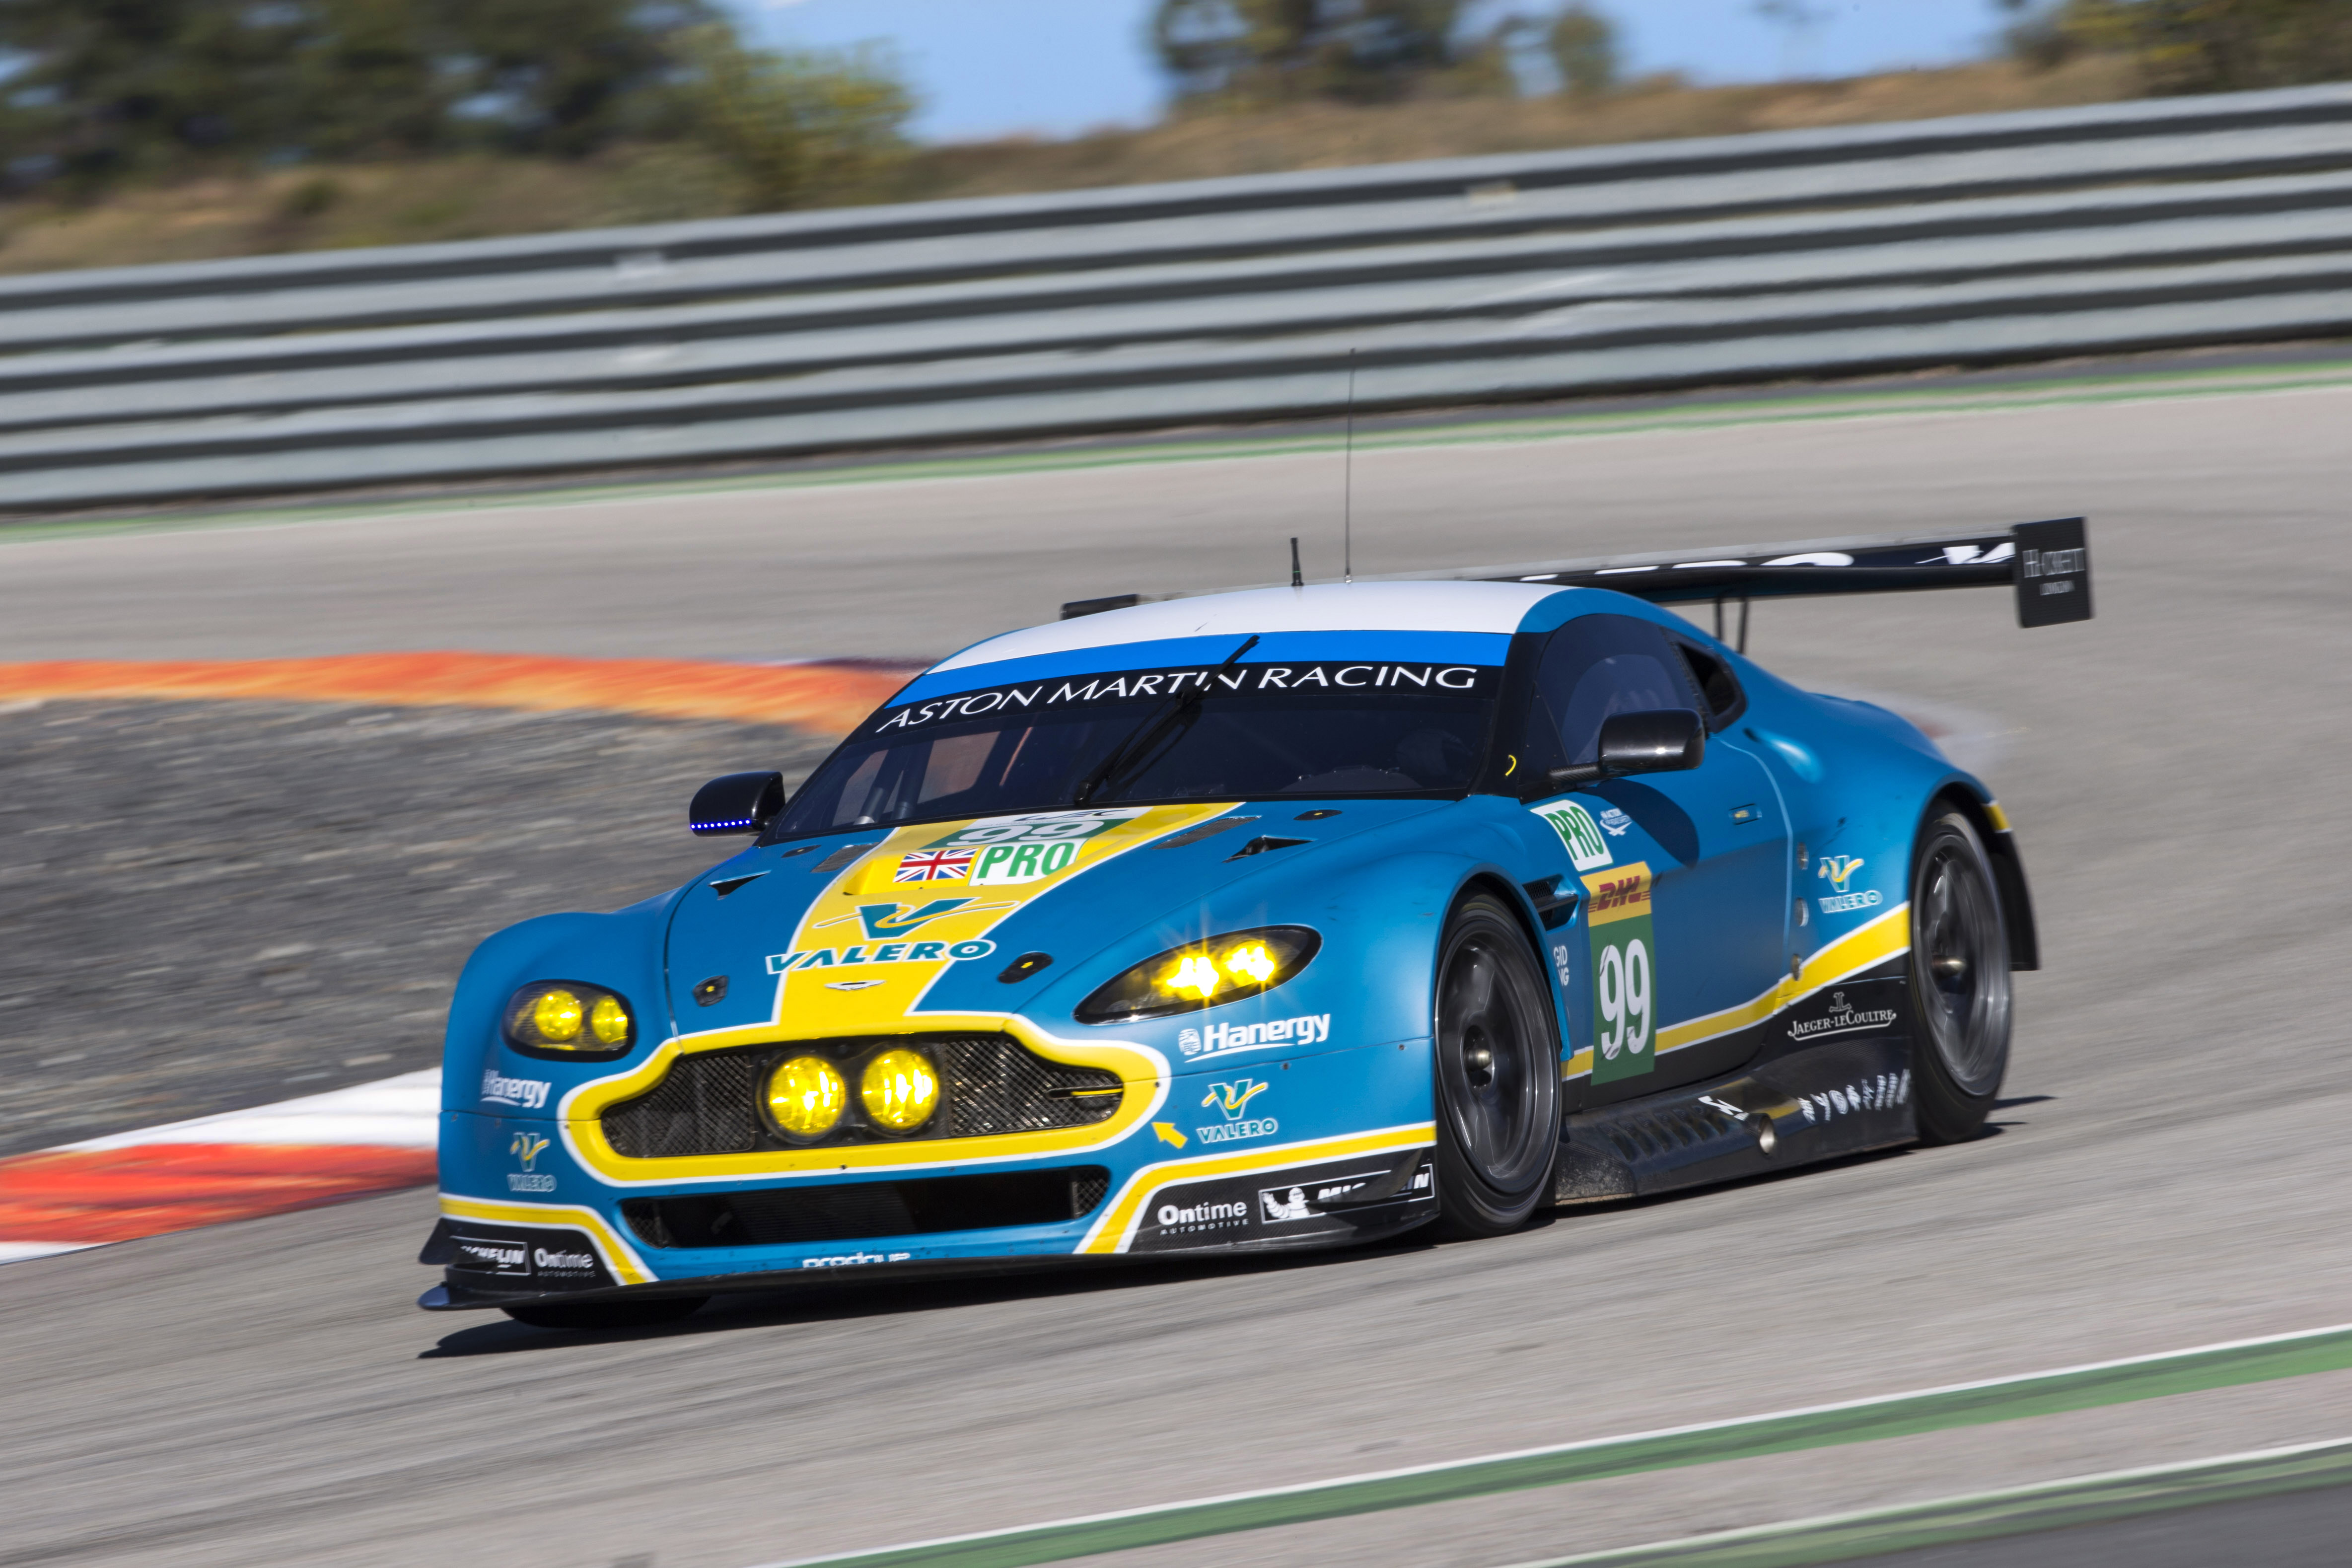 CEO Of Aston Martin Accepted Racing Competition Running For 24 Hours